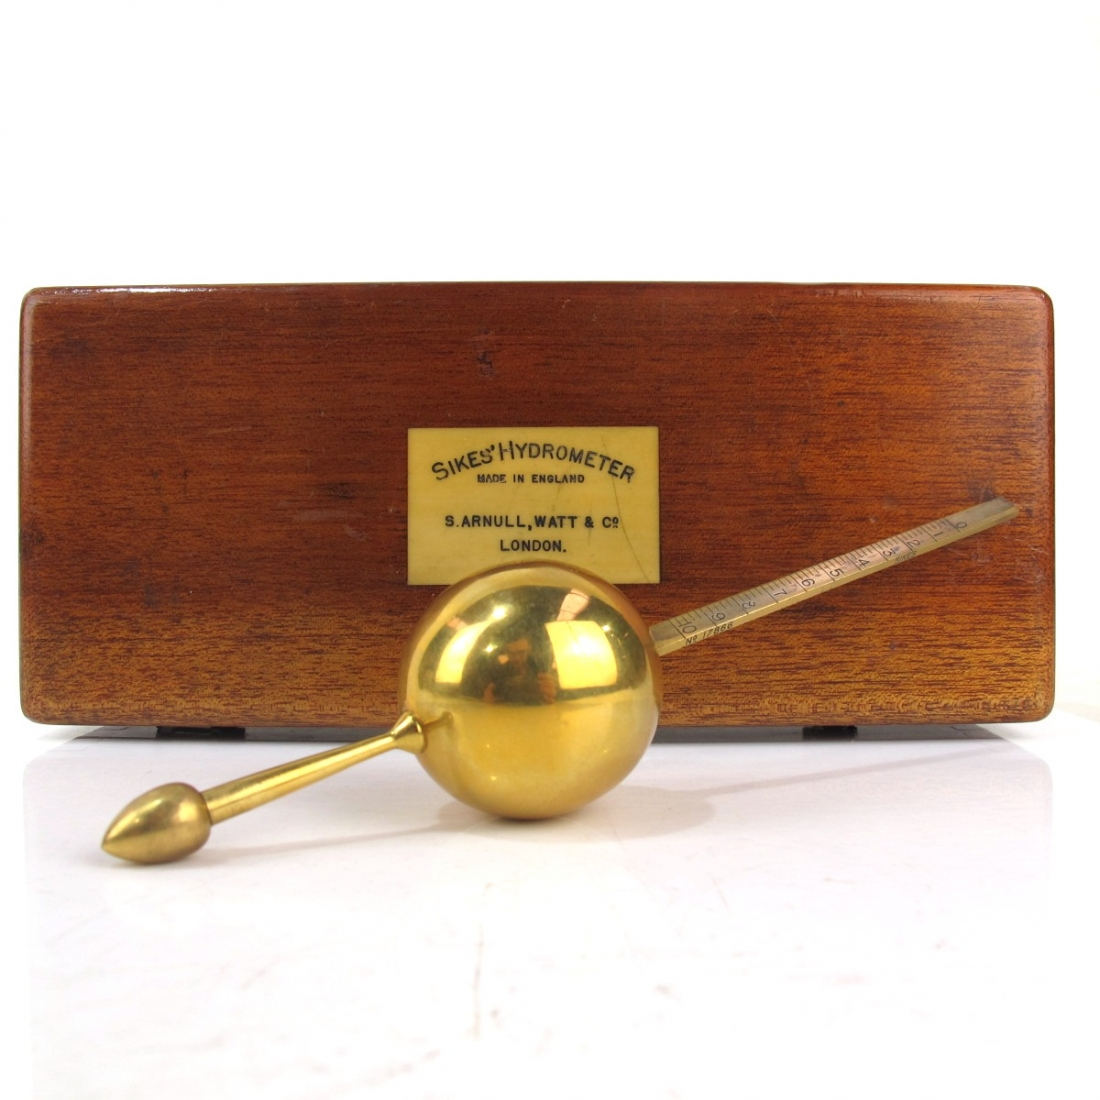 Sikes' Hydrometer Early 1900s